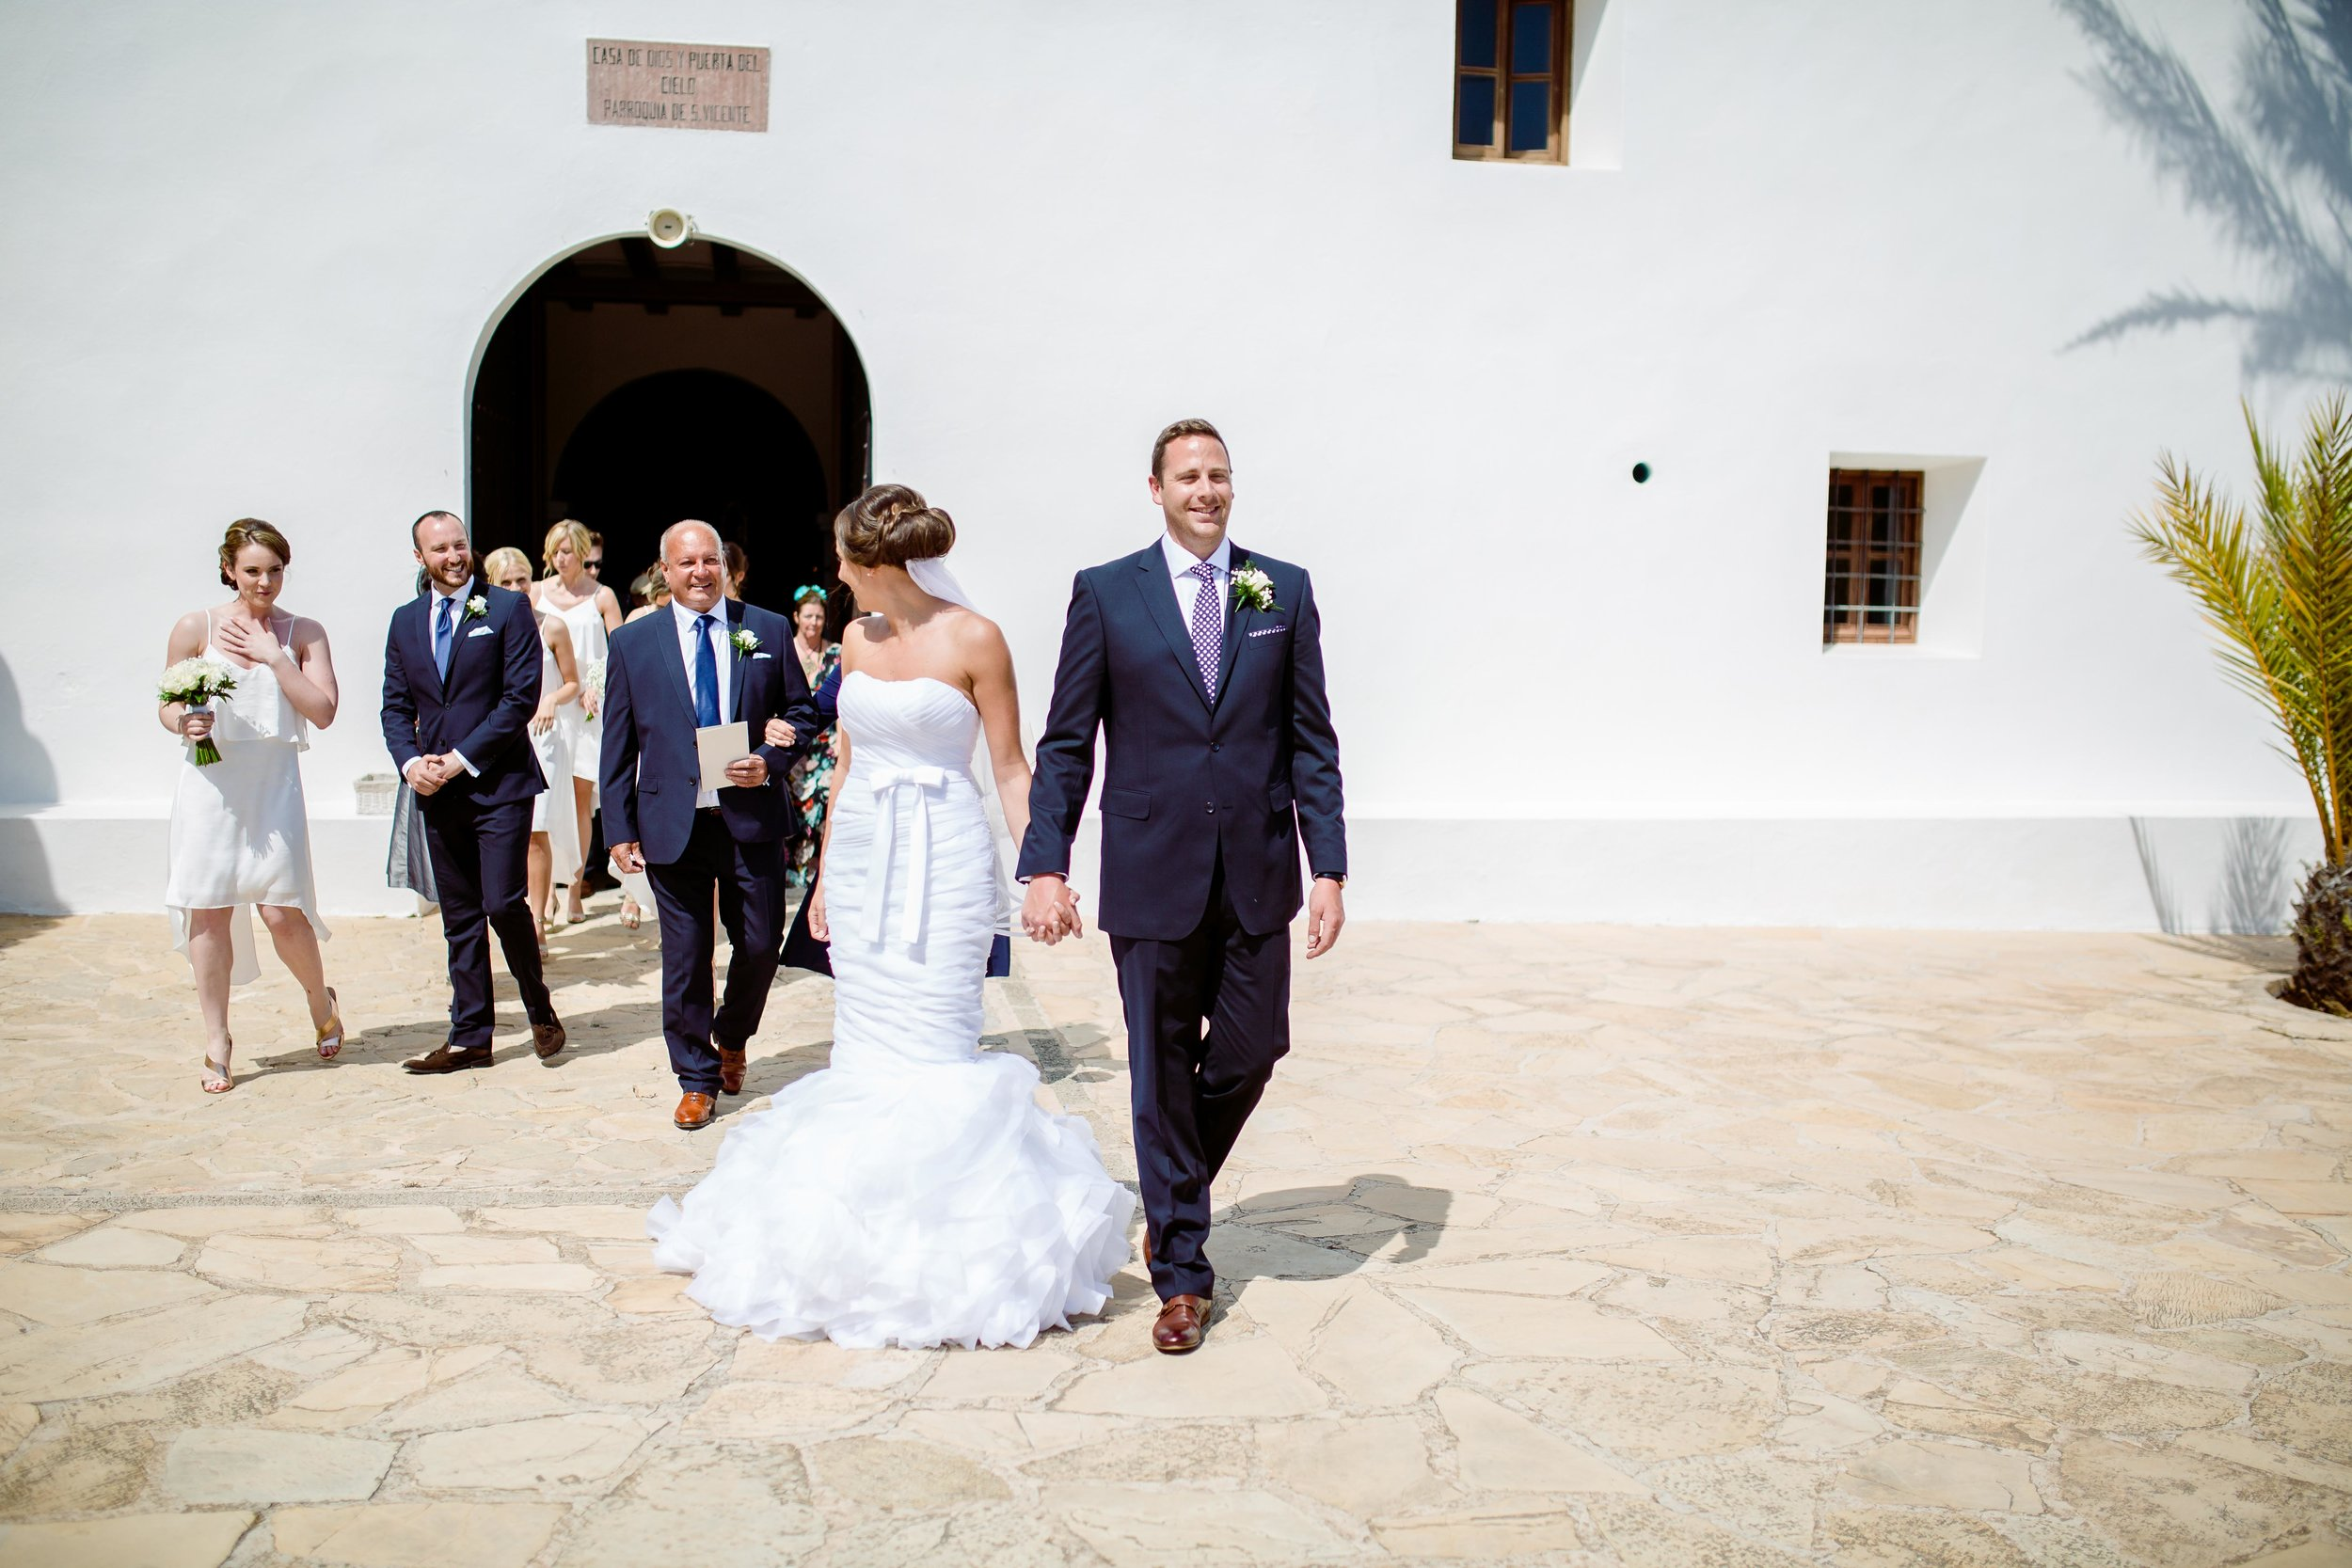 Natalie & Max Ibiza Destination Wedding-49.jpg